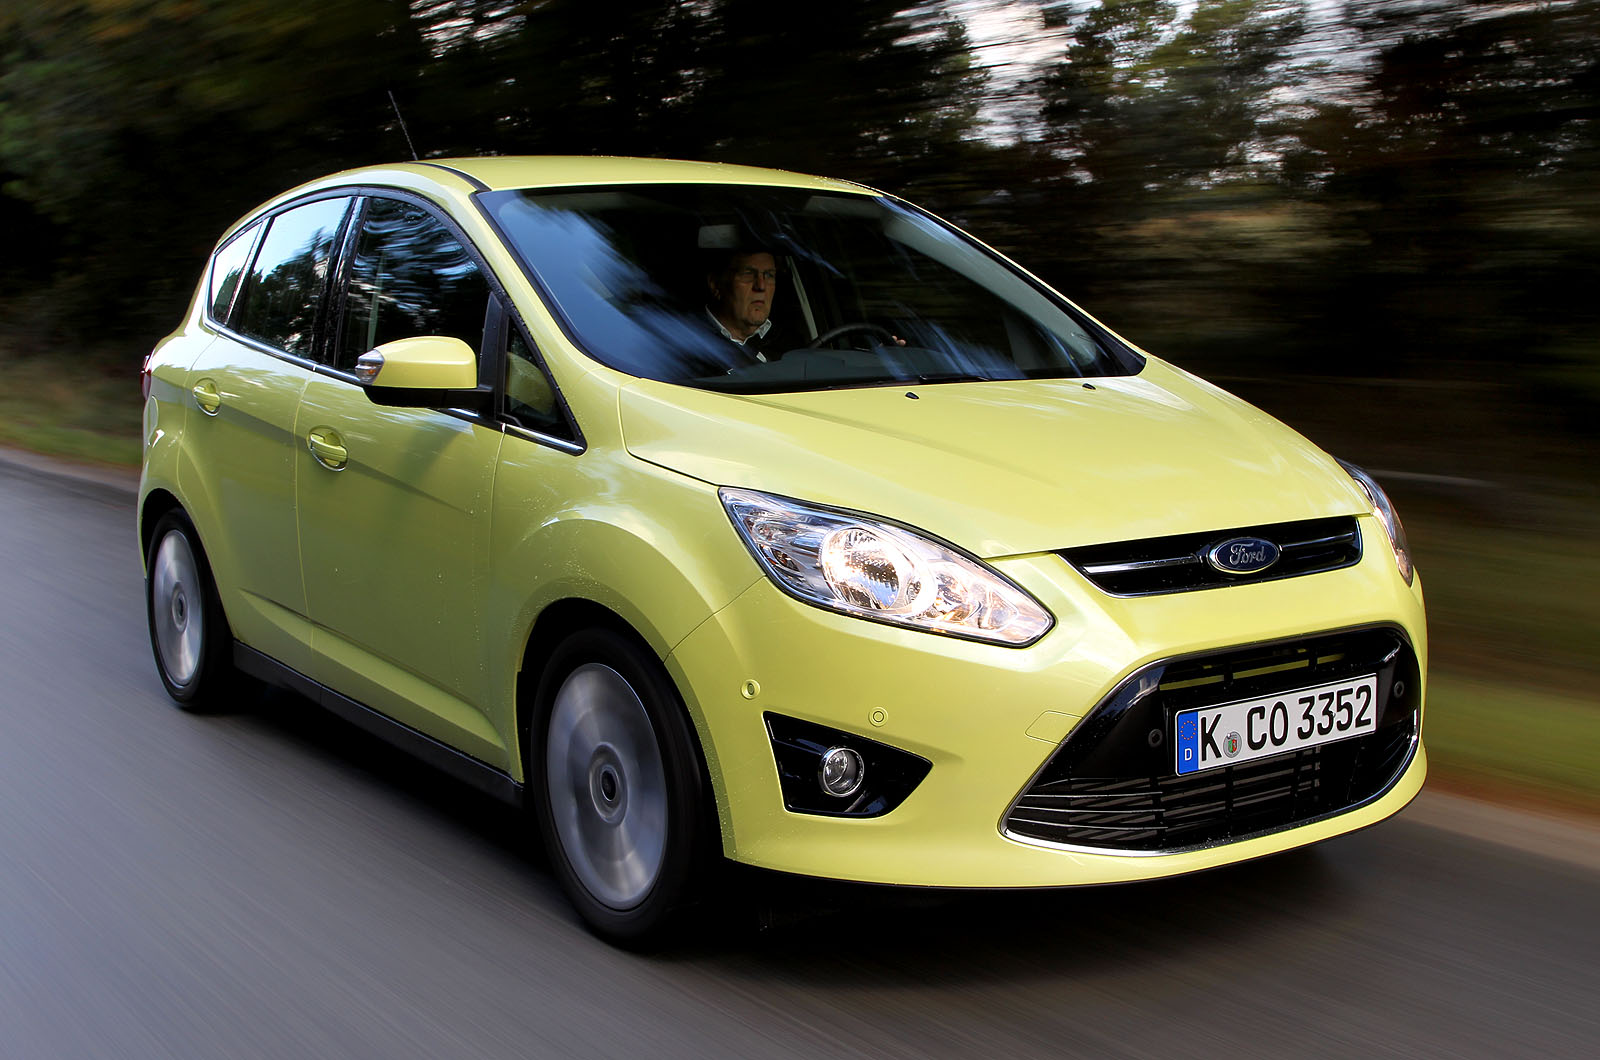 ford c-max 1.6 ecoboost #1